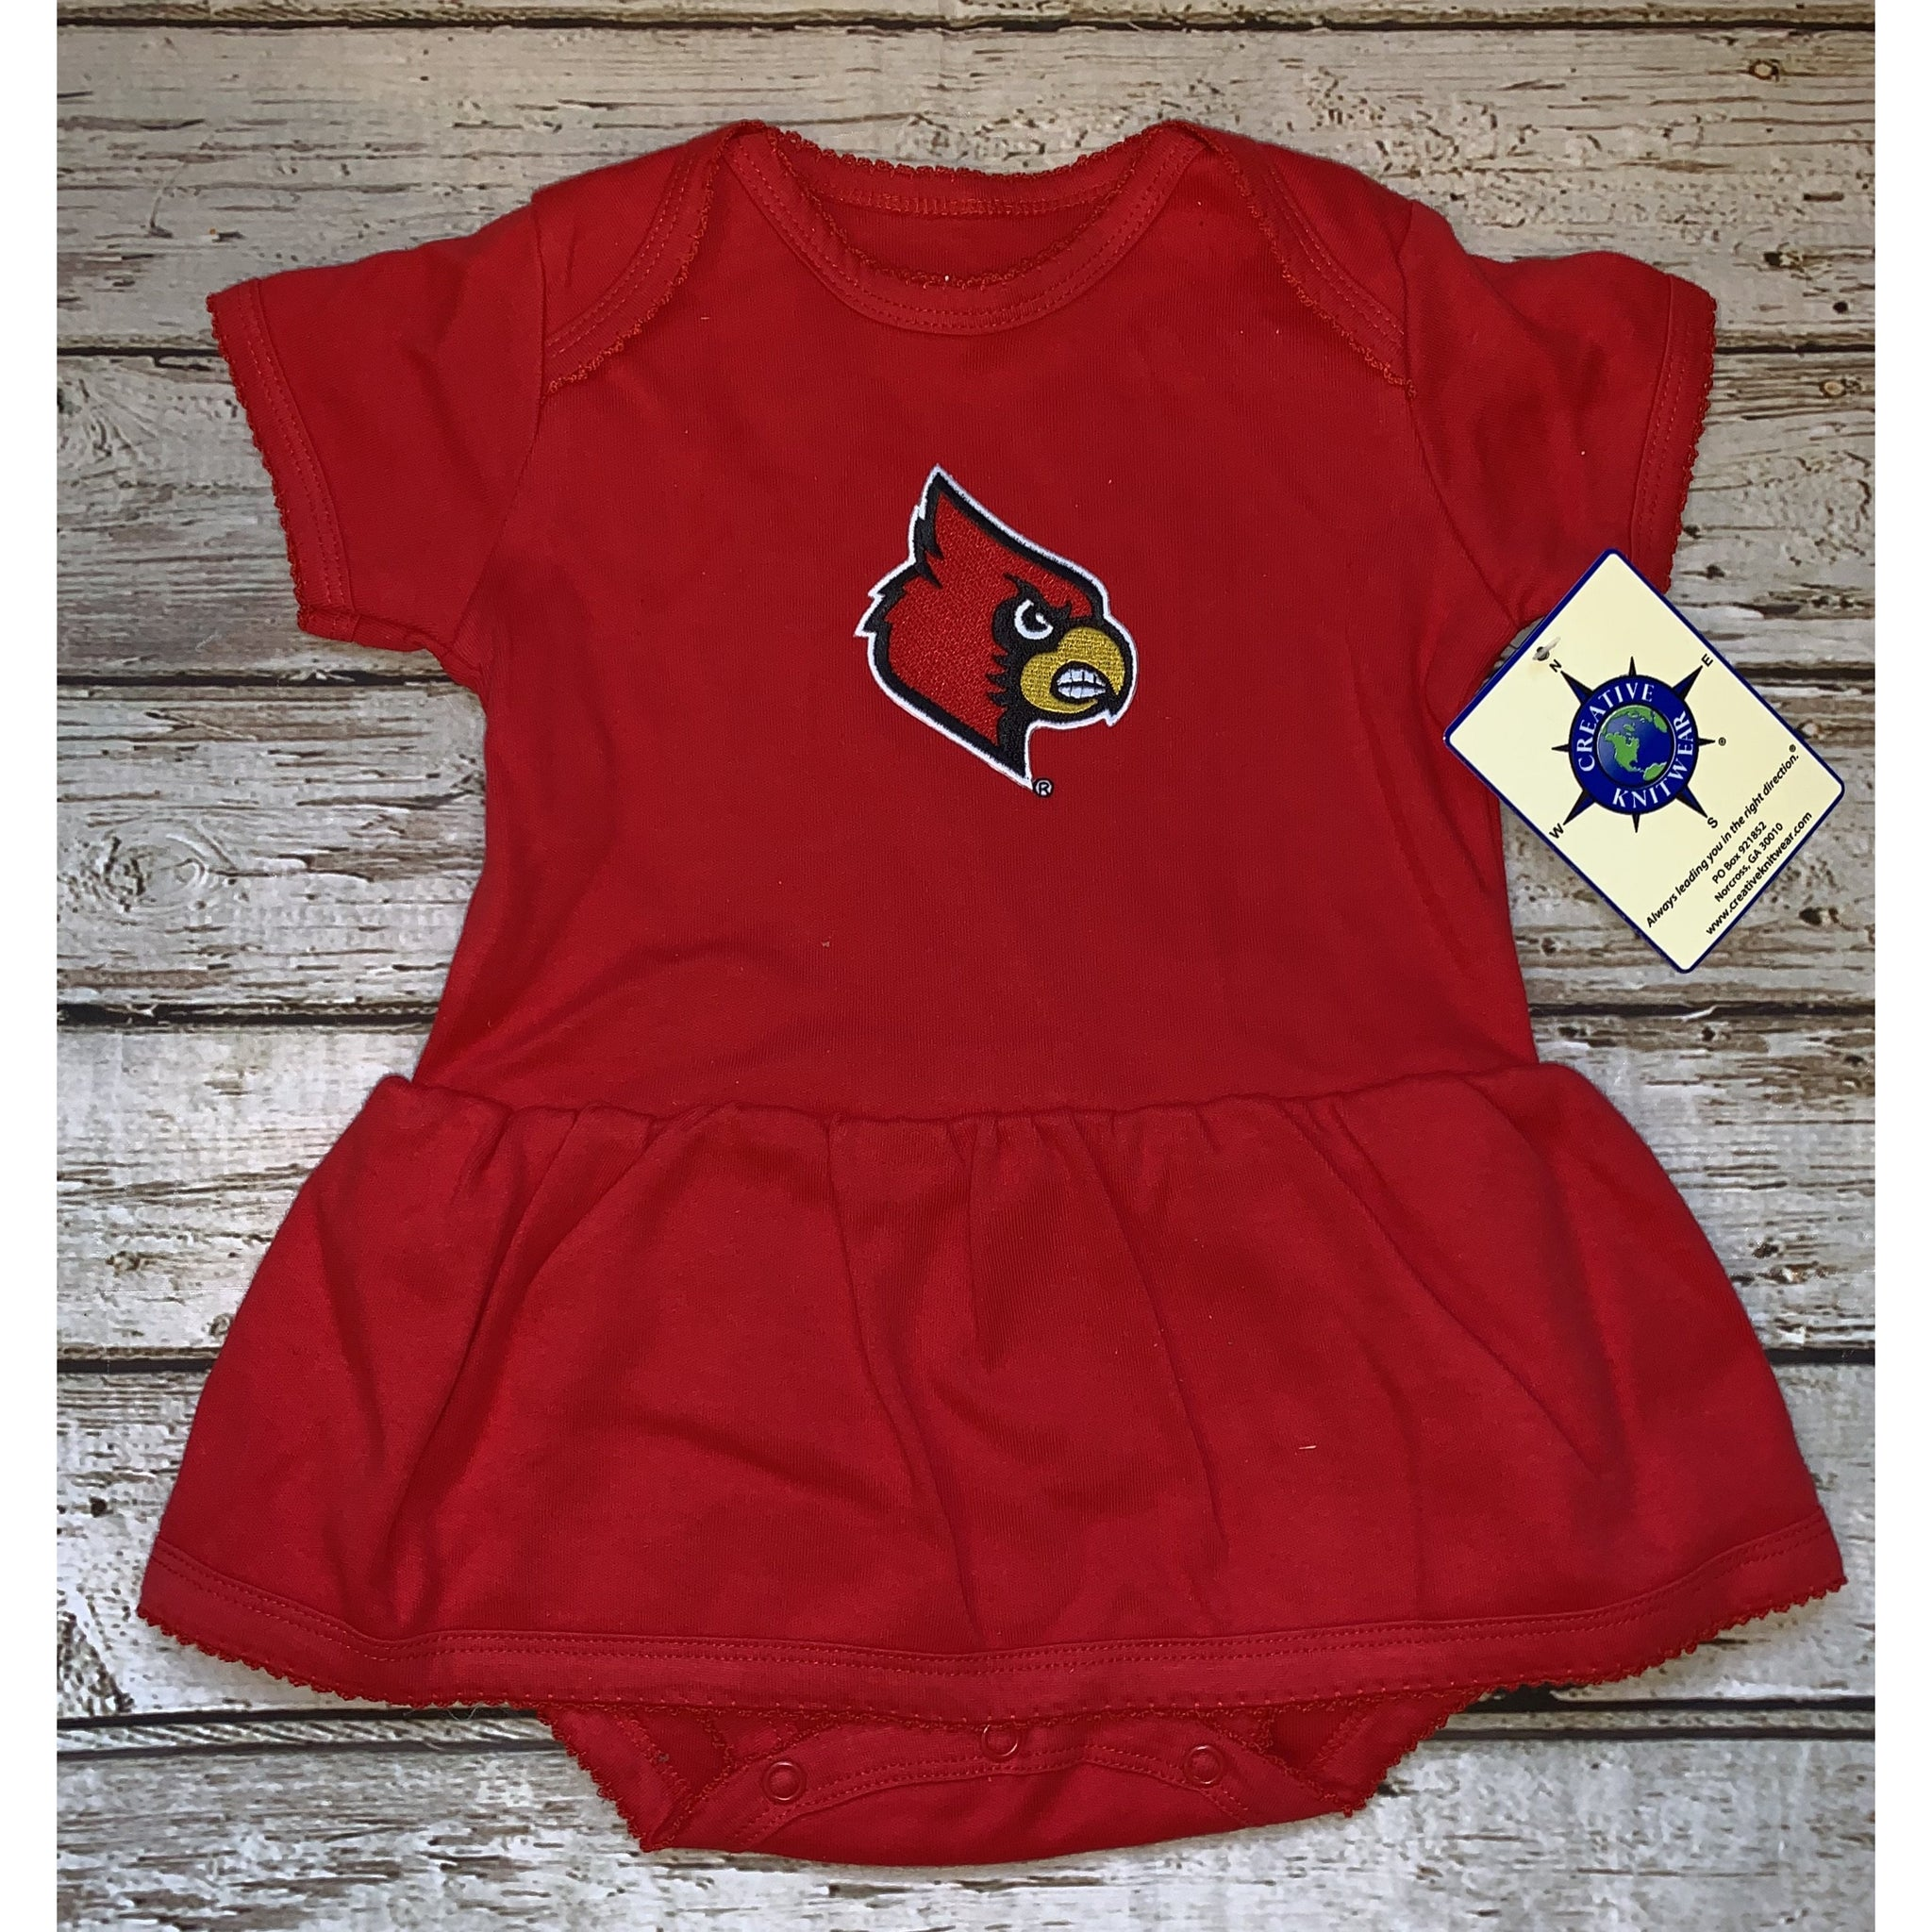 University of Louisville Collegiate Dress